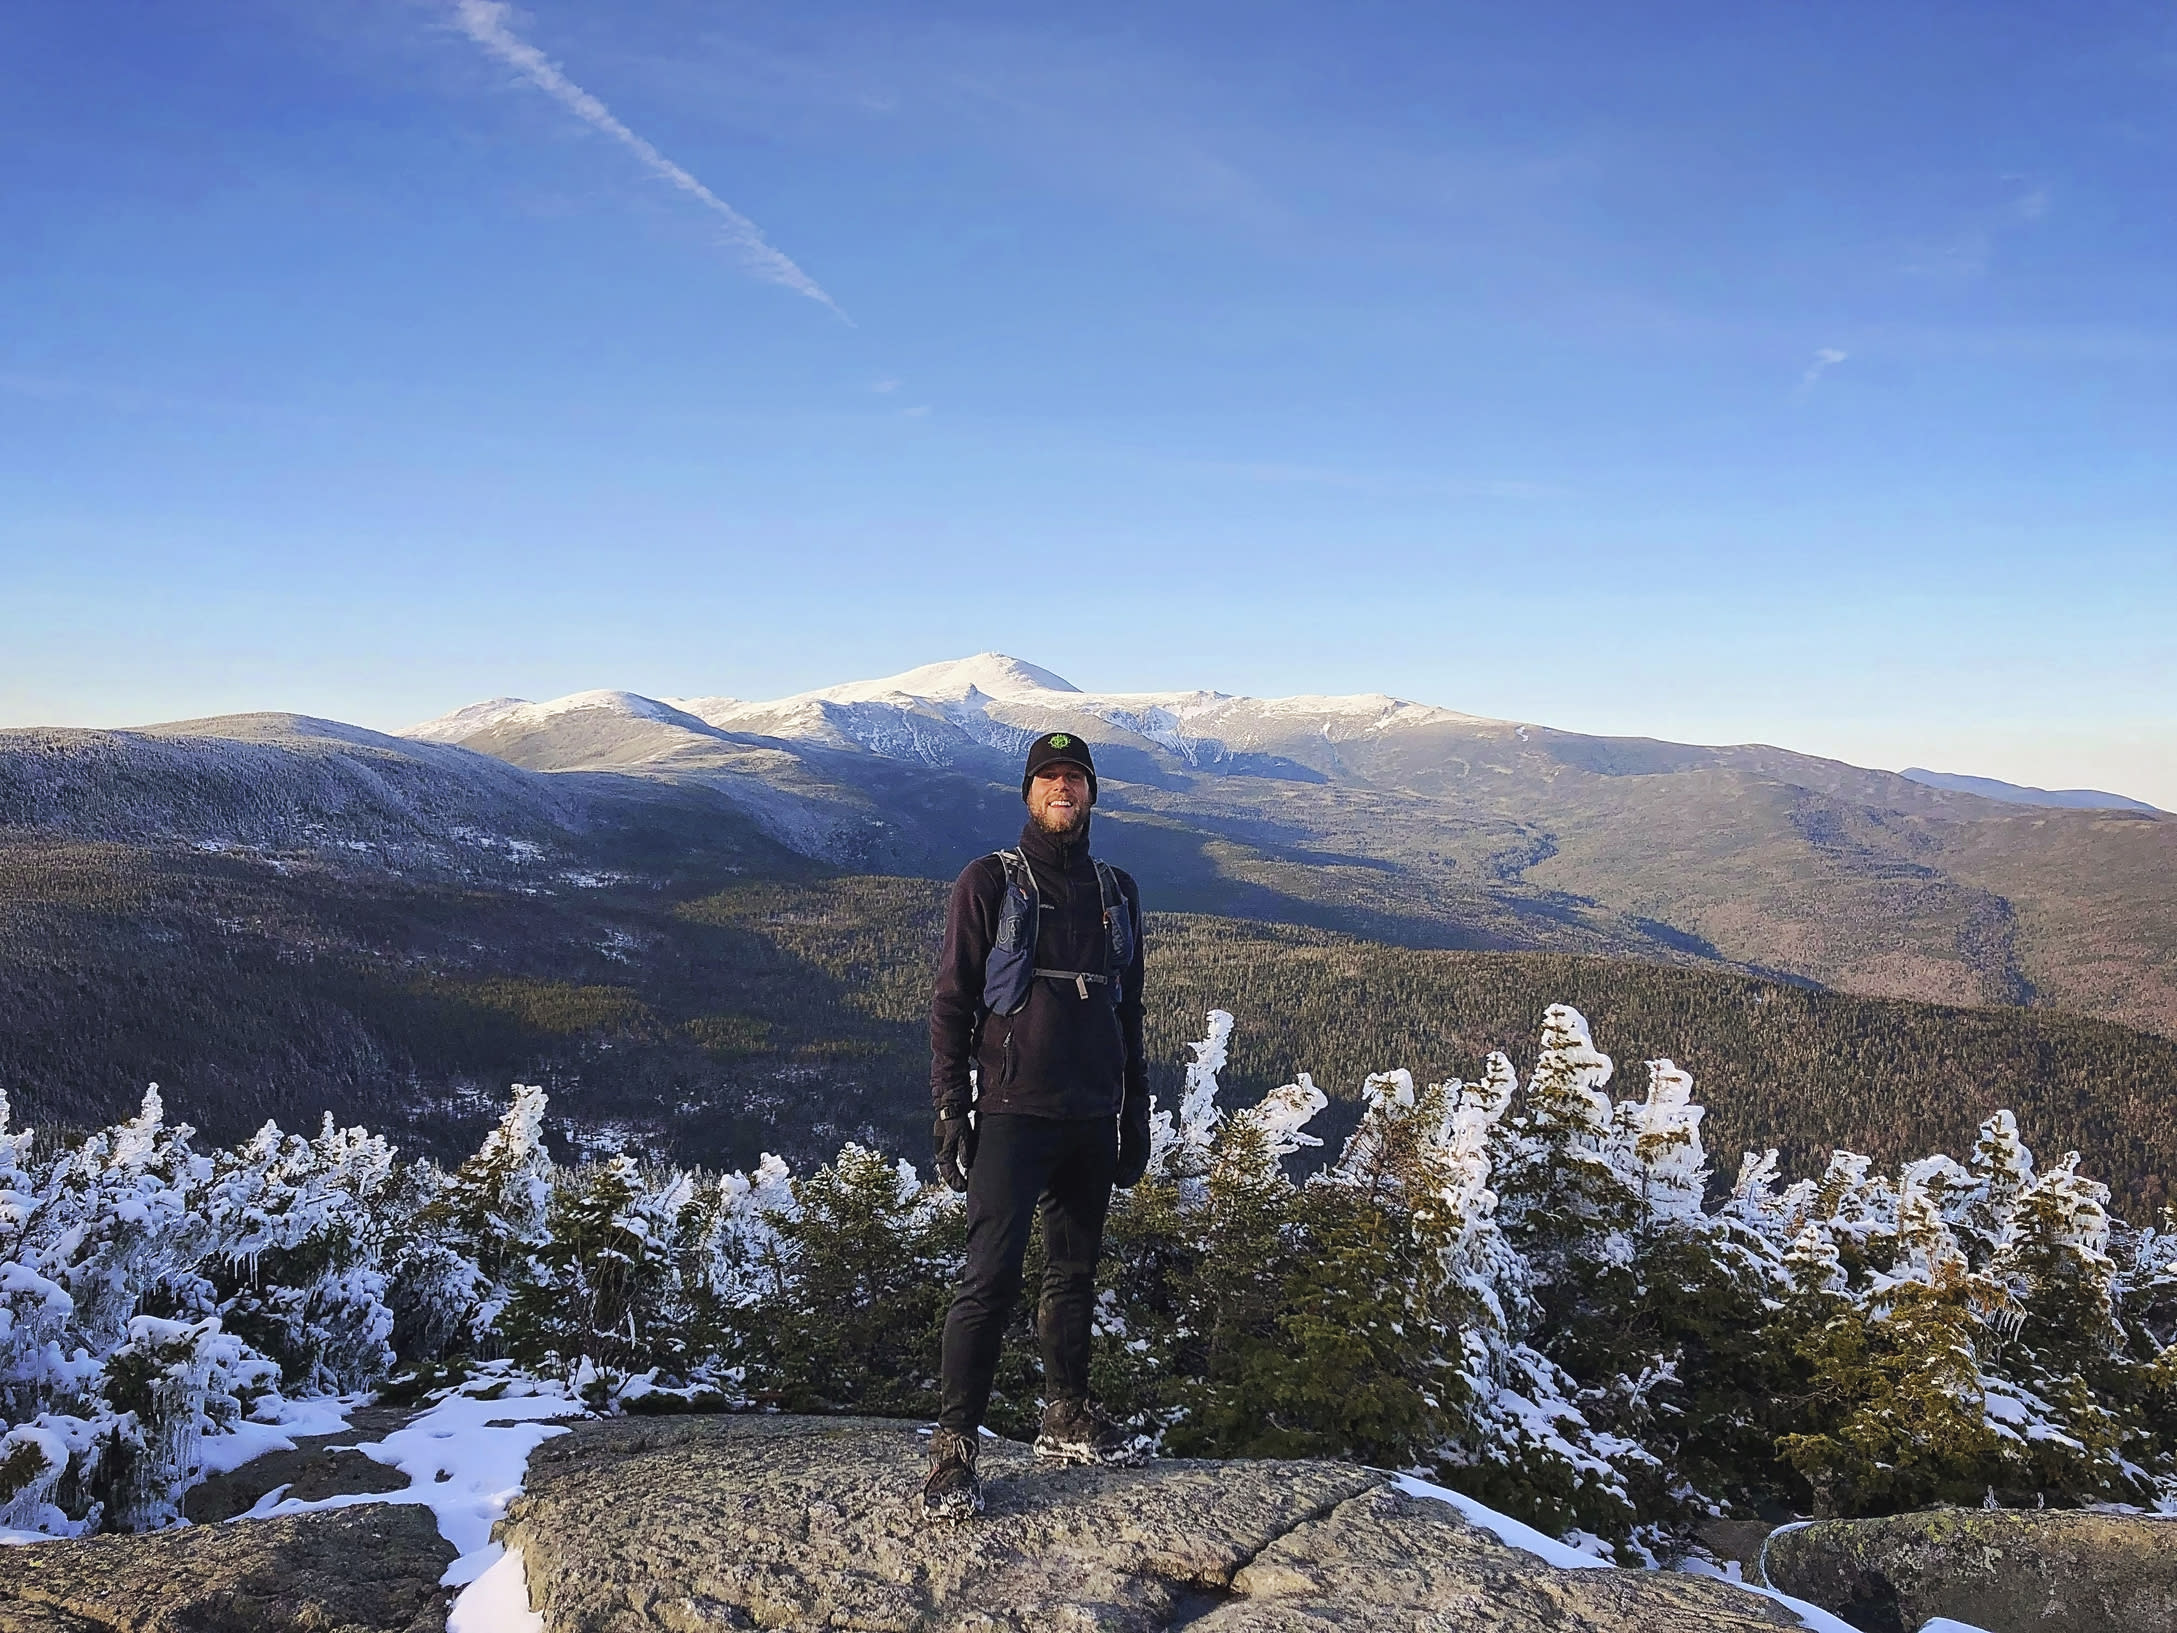 This photo taken by Philip Carcia on April 30, 2019, shows Carcia atop Mount Jackson as he completed his ninth consecutive month of hiking each of New Hampshire's mountains taller than 4,000 feet. On July 7, Carcia became only the second hiker to cram the grid into a single year, finishing in 319 days and beating the previous record by five weeks. He says he sees himself not as a conqueror but a pioneer, giving himself to the mountains he loves. (Philip Carcia via AP)